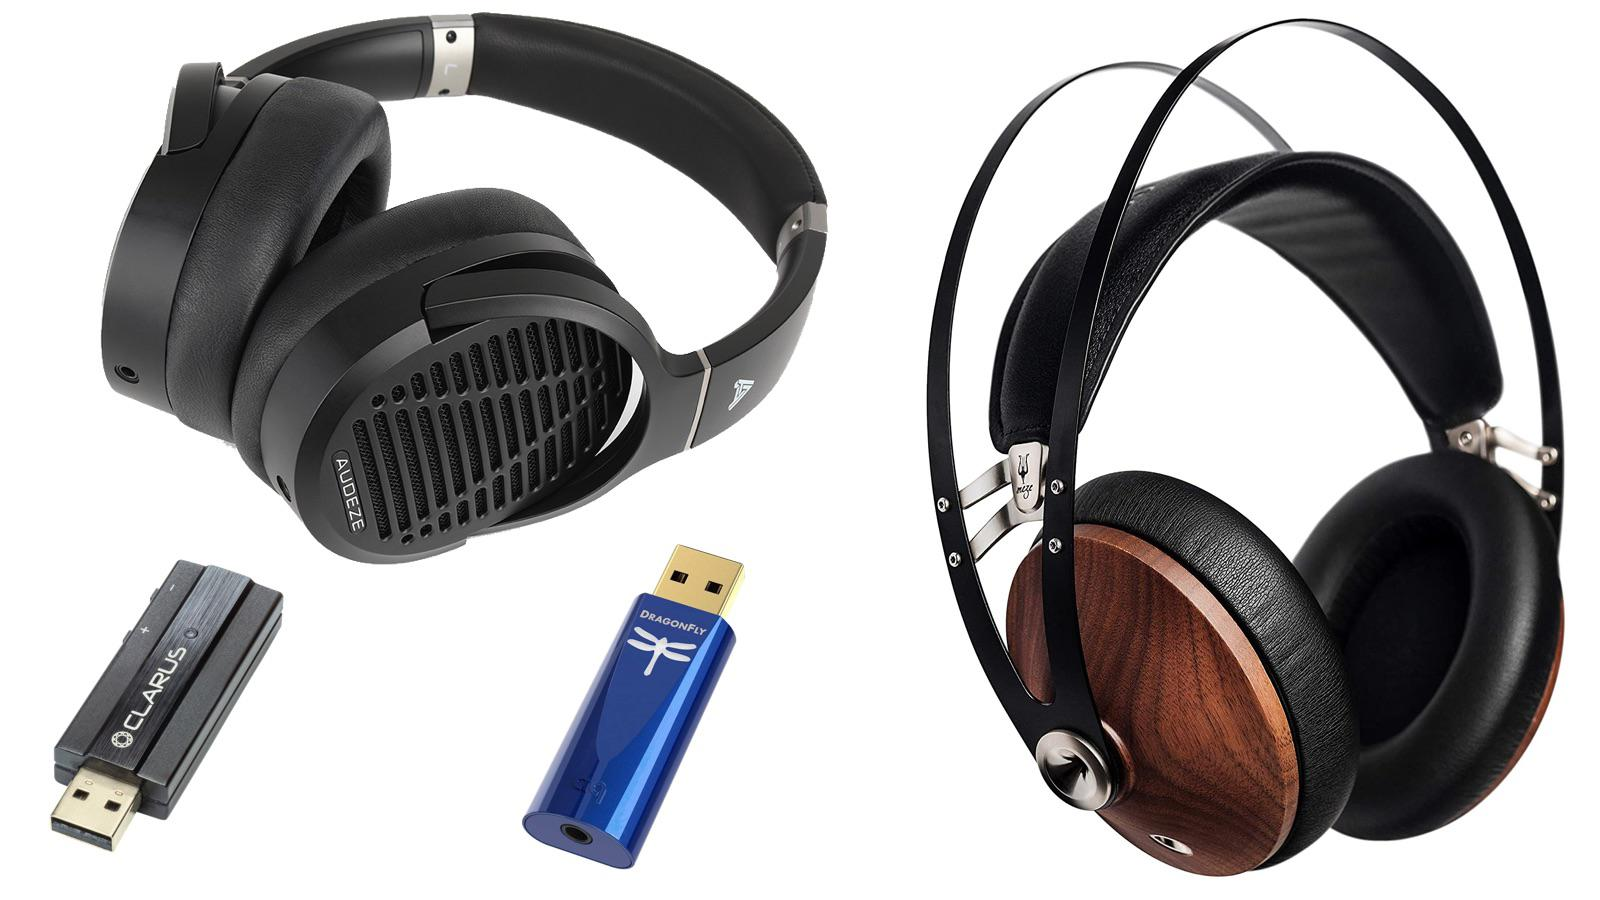 Audeze LCD-1 and Meze Audio 99 Classics Headphones with Clarus CODA and Audioquest Dragonfly Cobalt USB DACs